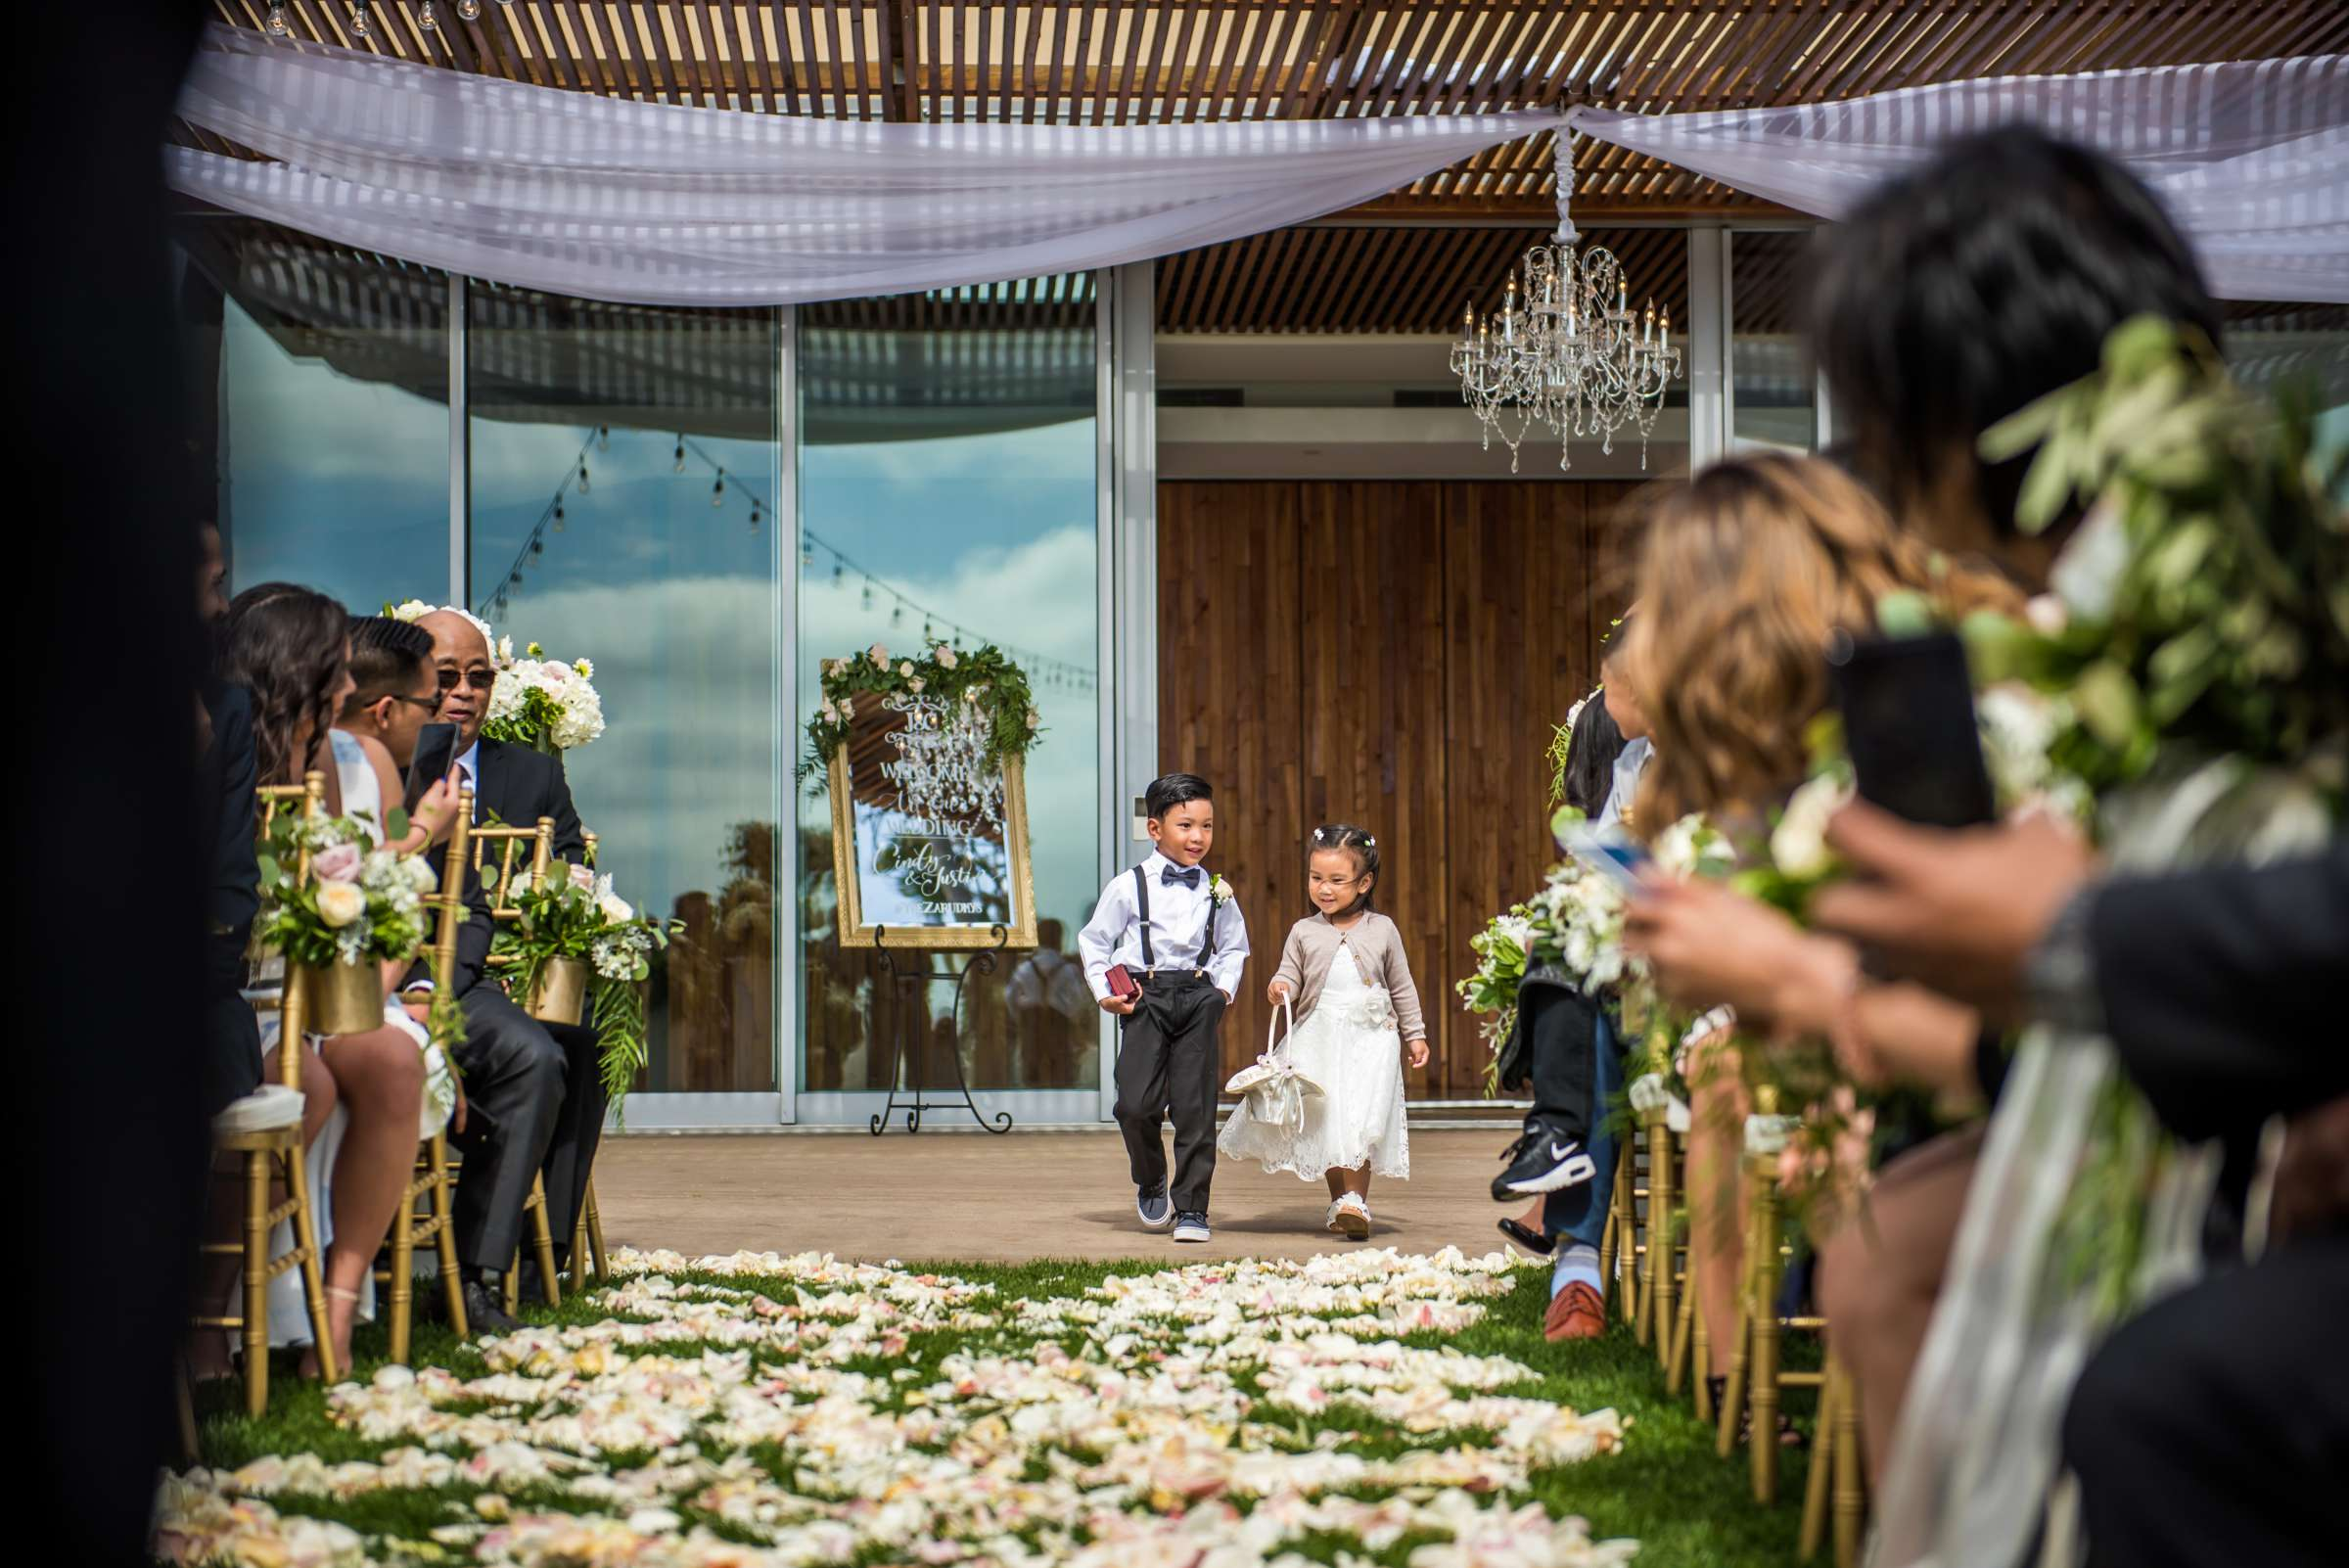 Scripps Seaside Forum Wedding coordinated by Lavish Weddings, Cindy and Justin Wedding Photo #381812 by True Photography